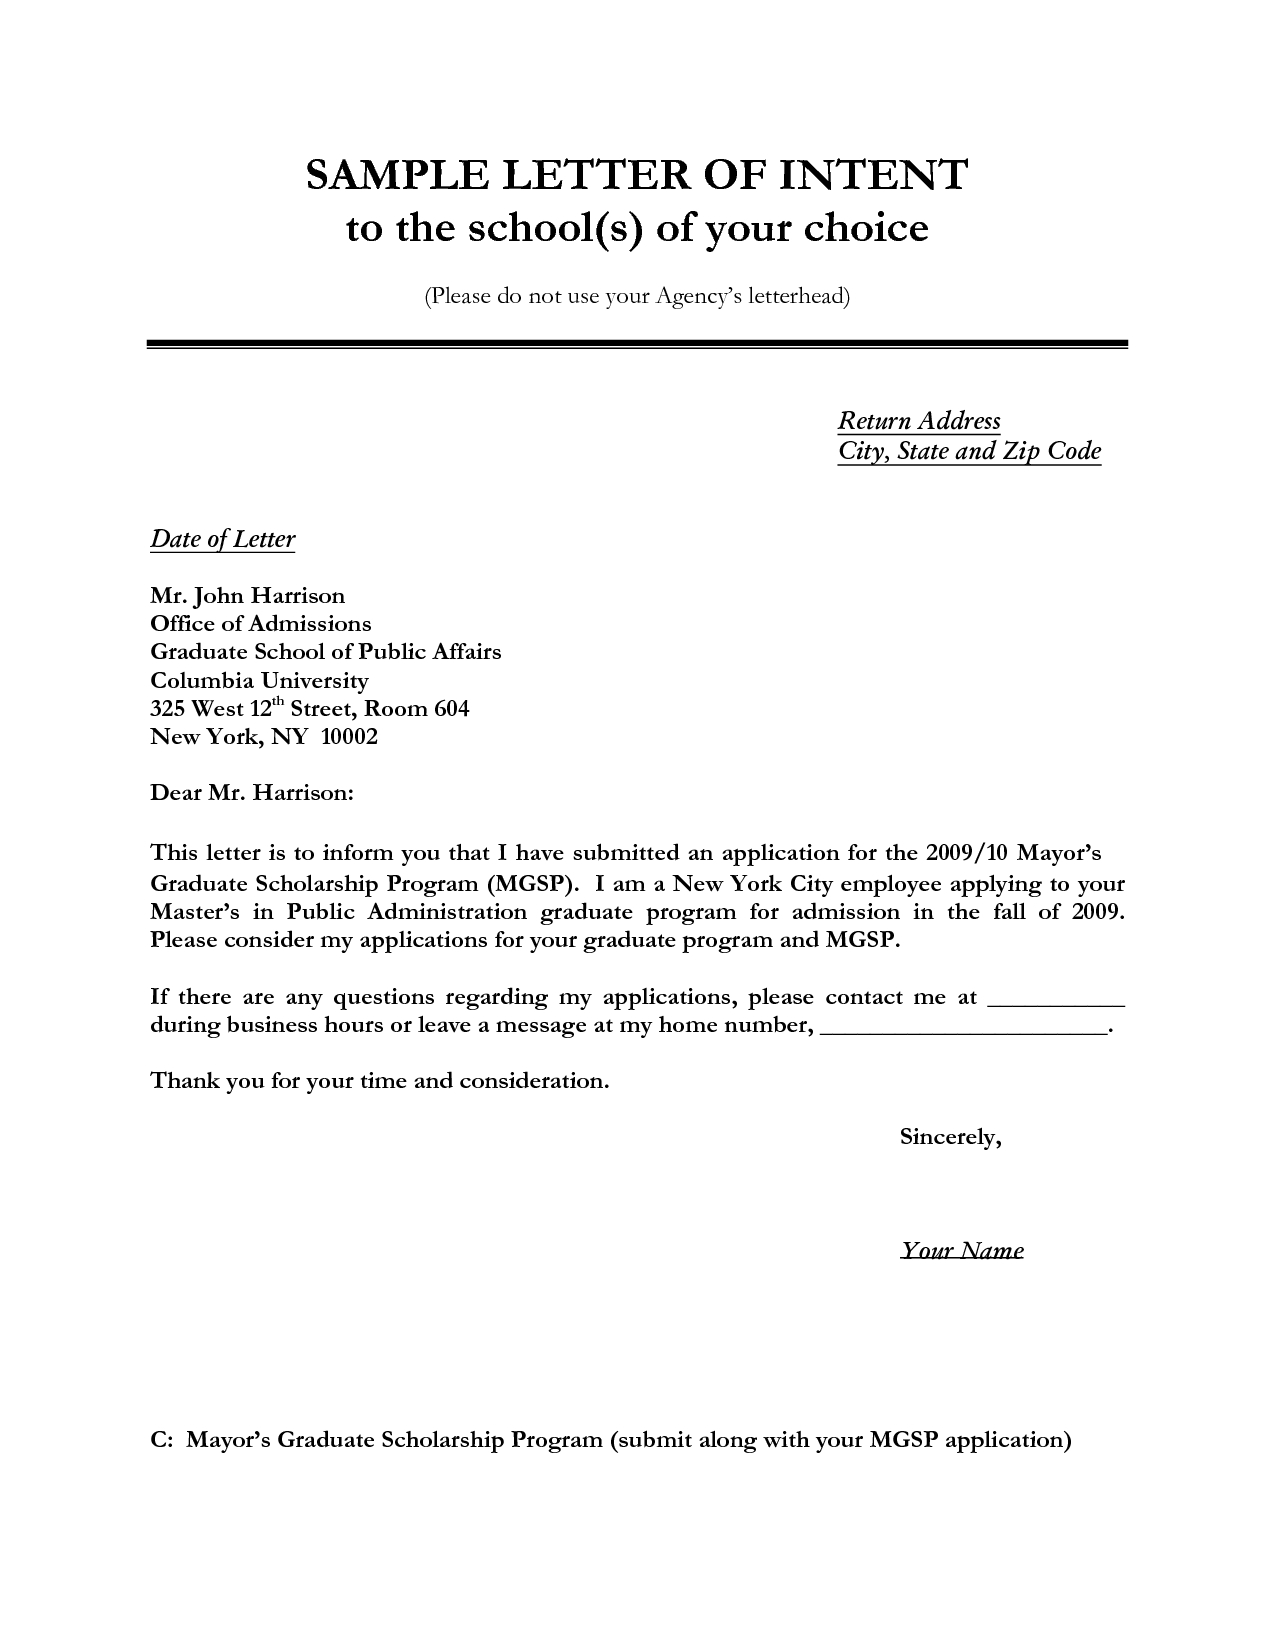 Lien Letter Template - Letter Of Intent Sample